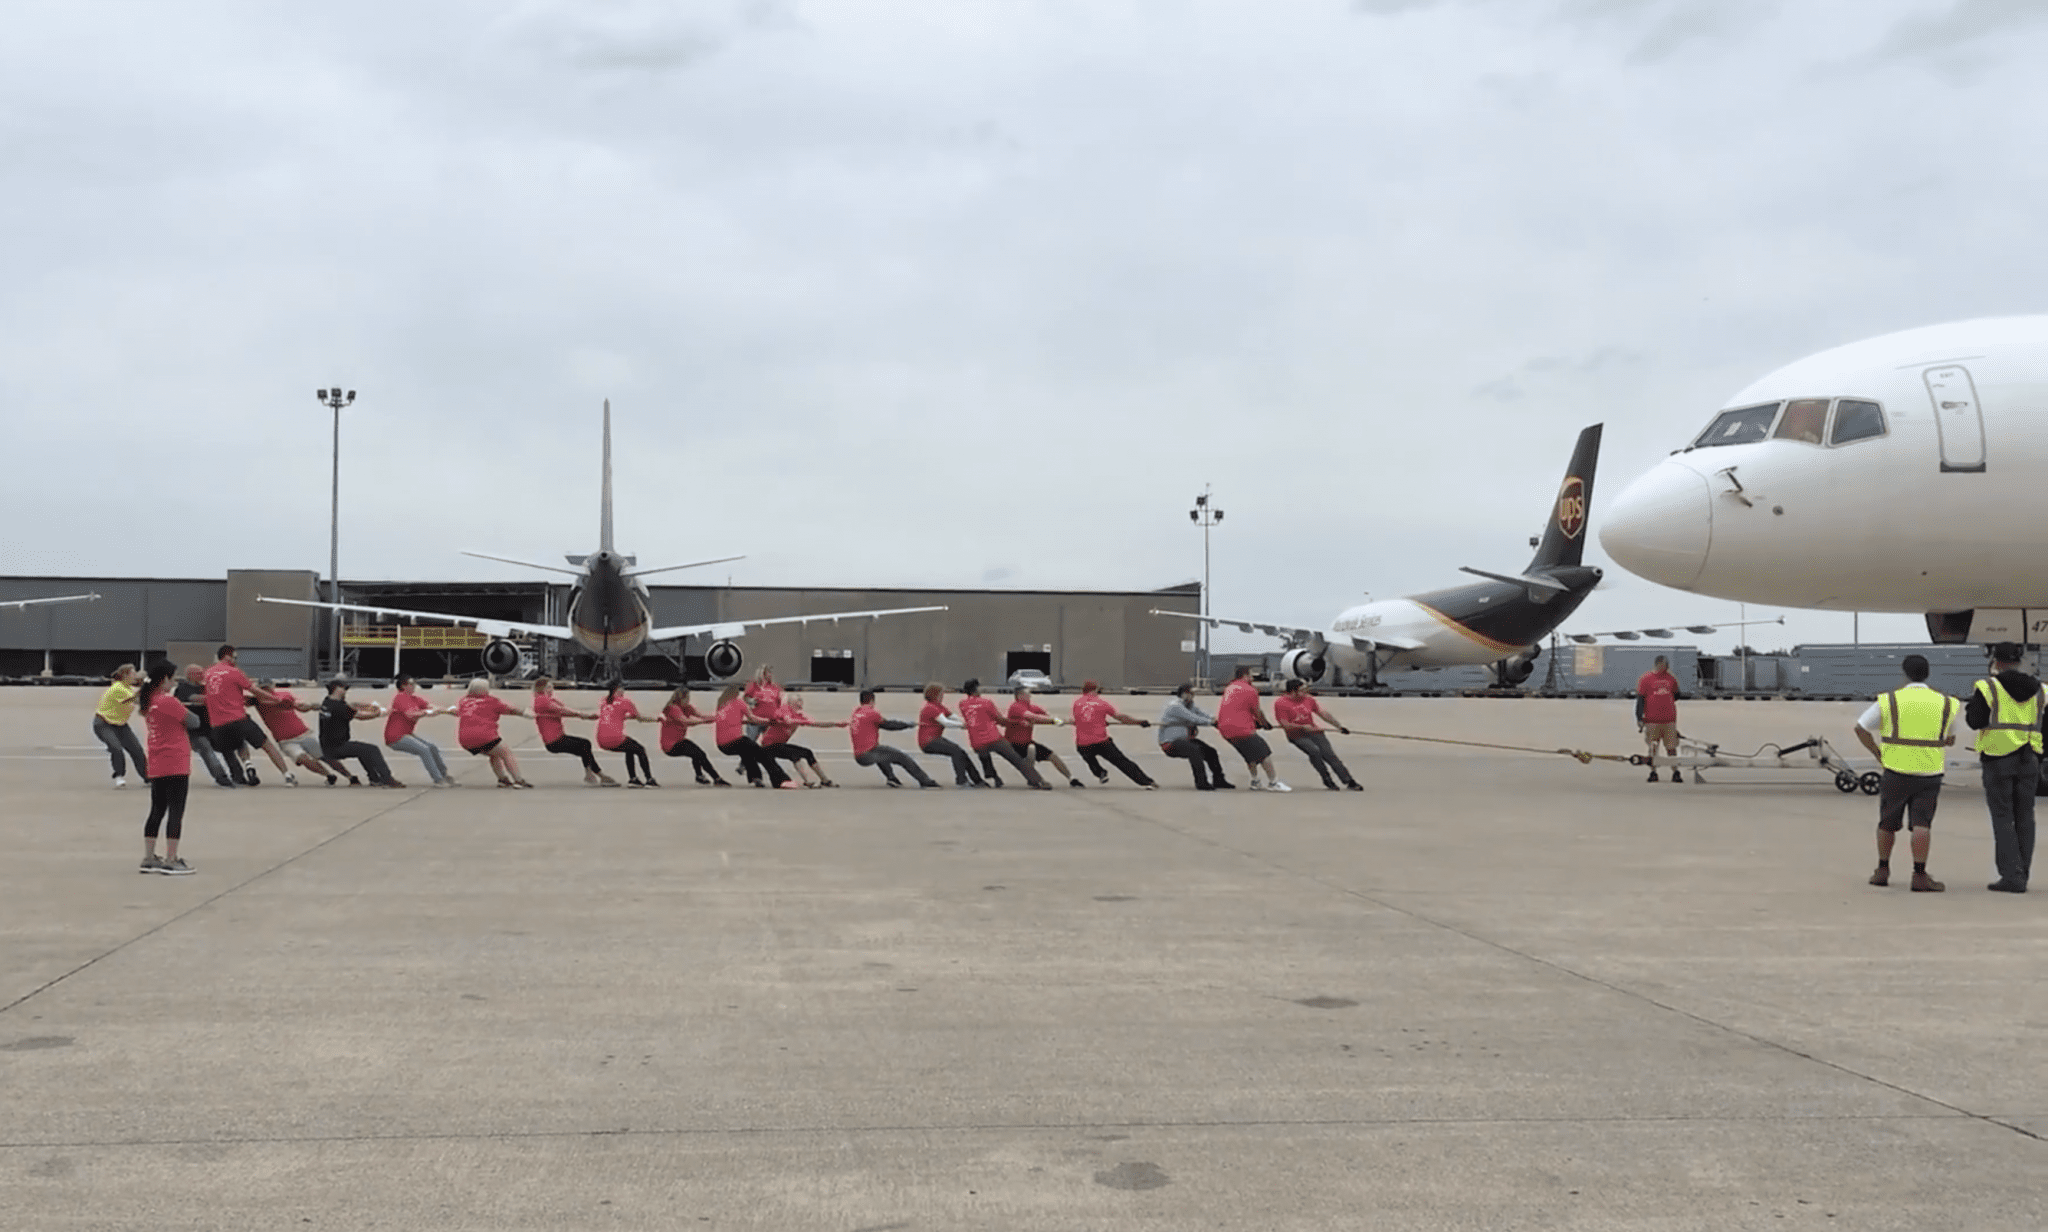 Slingshot Competes in Plane Pull, Raises Money for SOKY